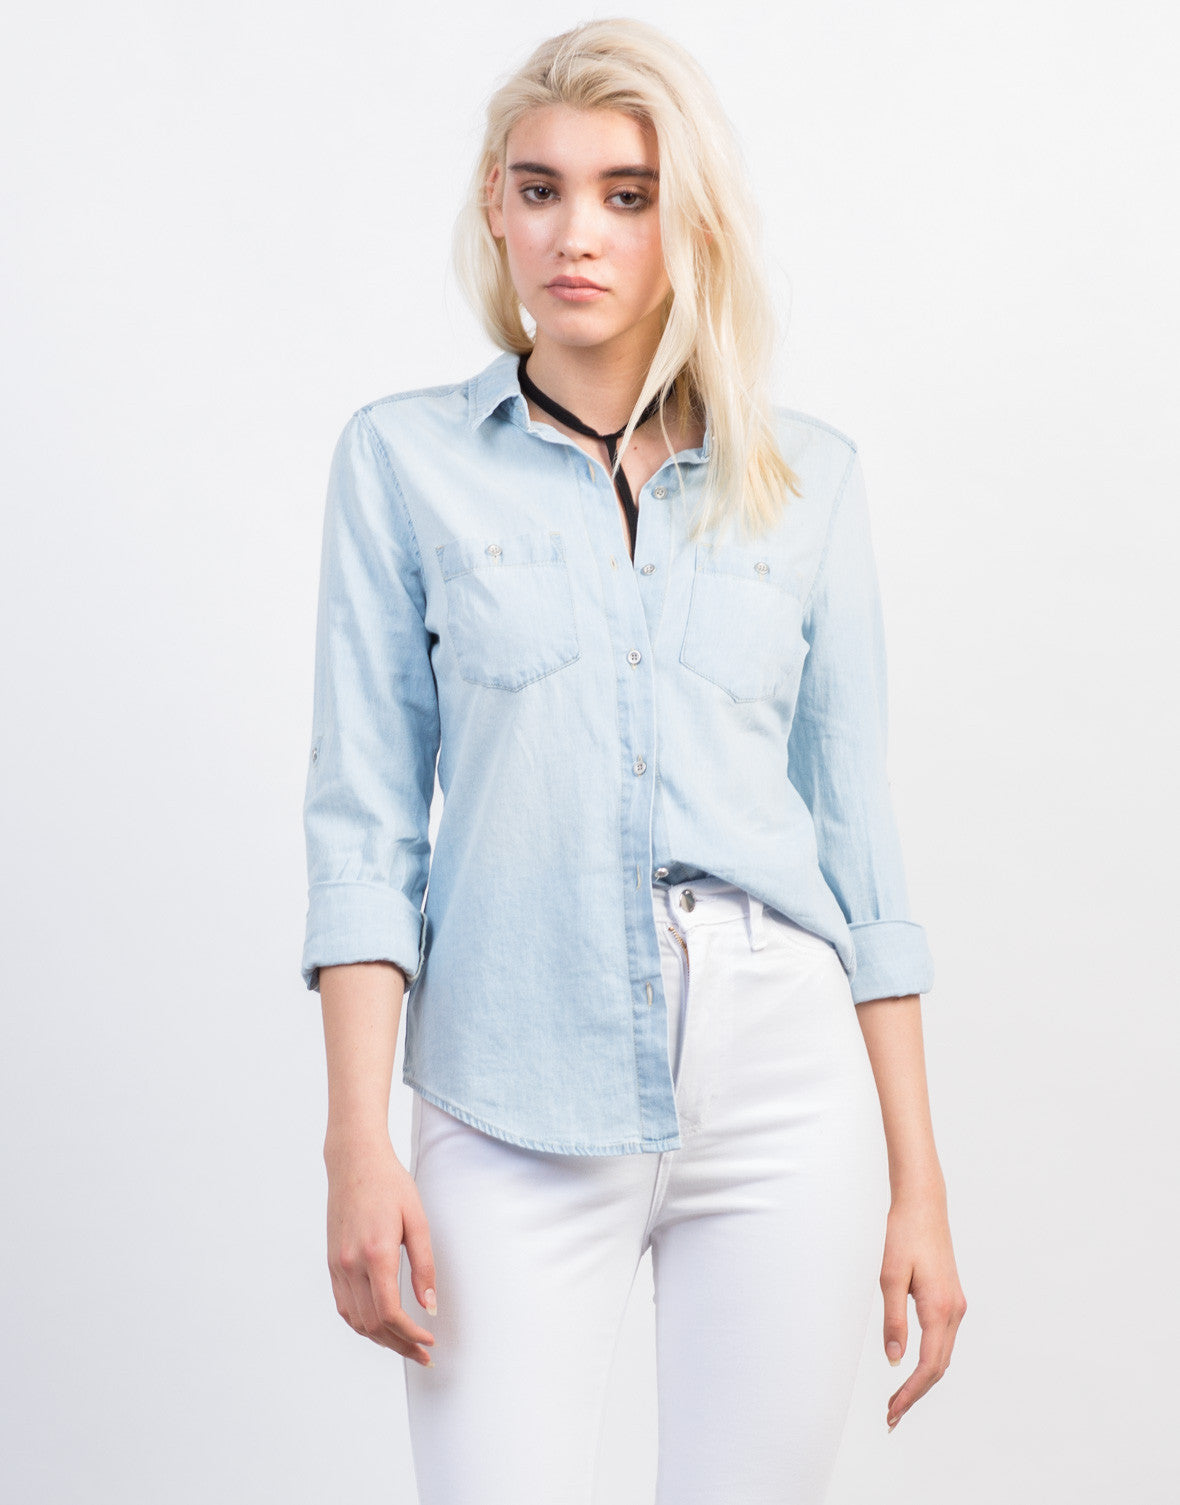 Front View of Light Washed Denim Shirt